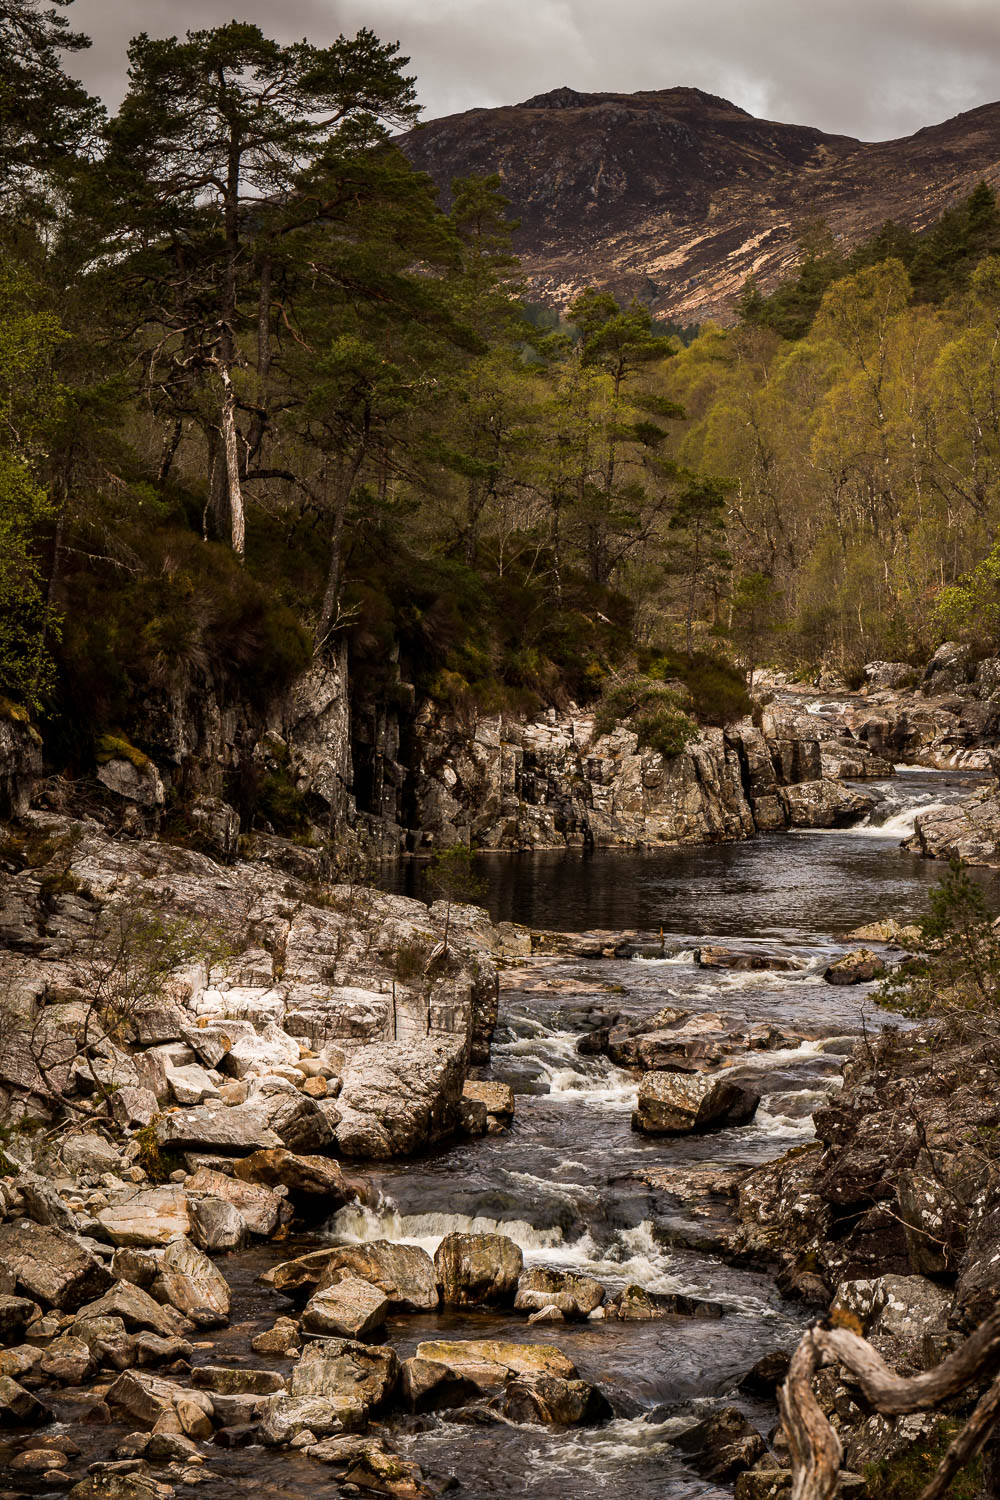 The rapids just upstream of Dog Falls on the River Affric.